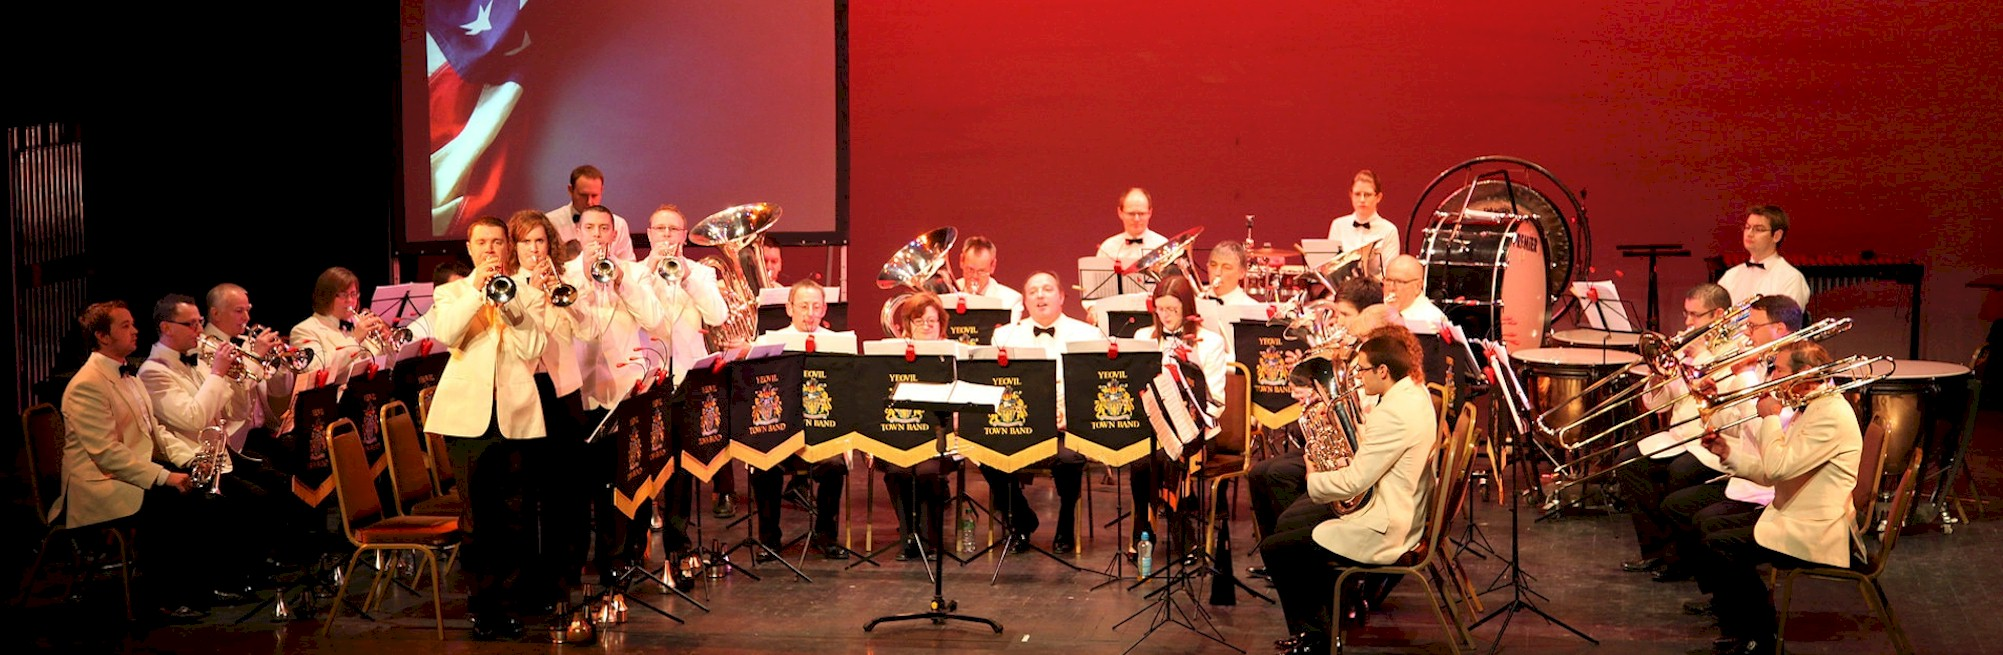 scaba | The local association for Brass Bands in the